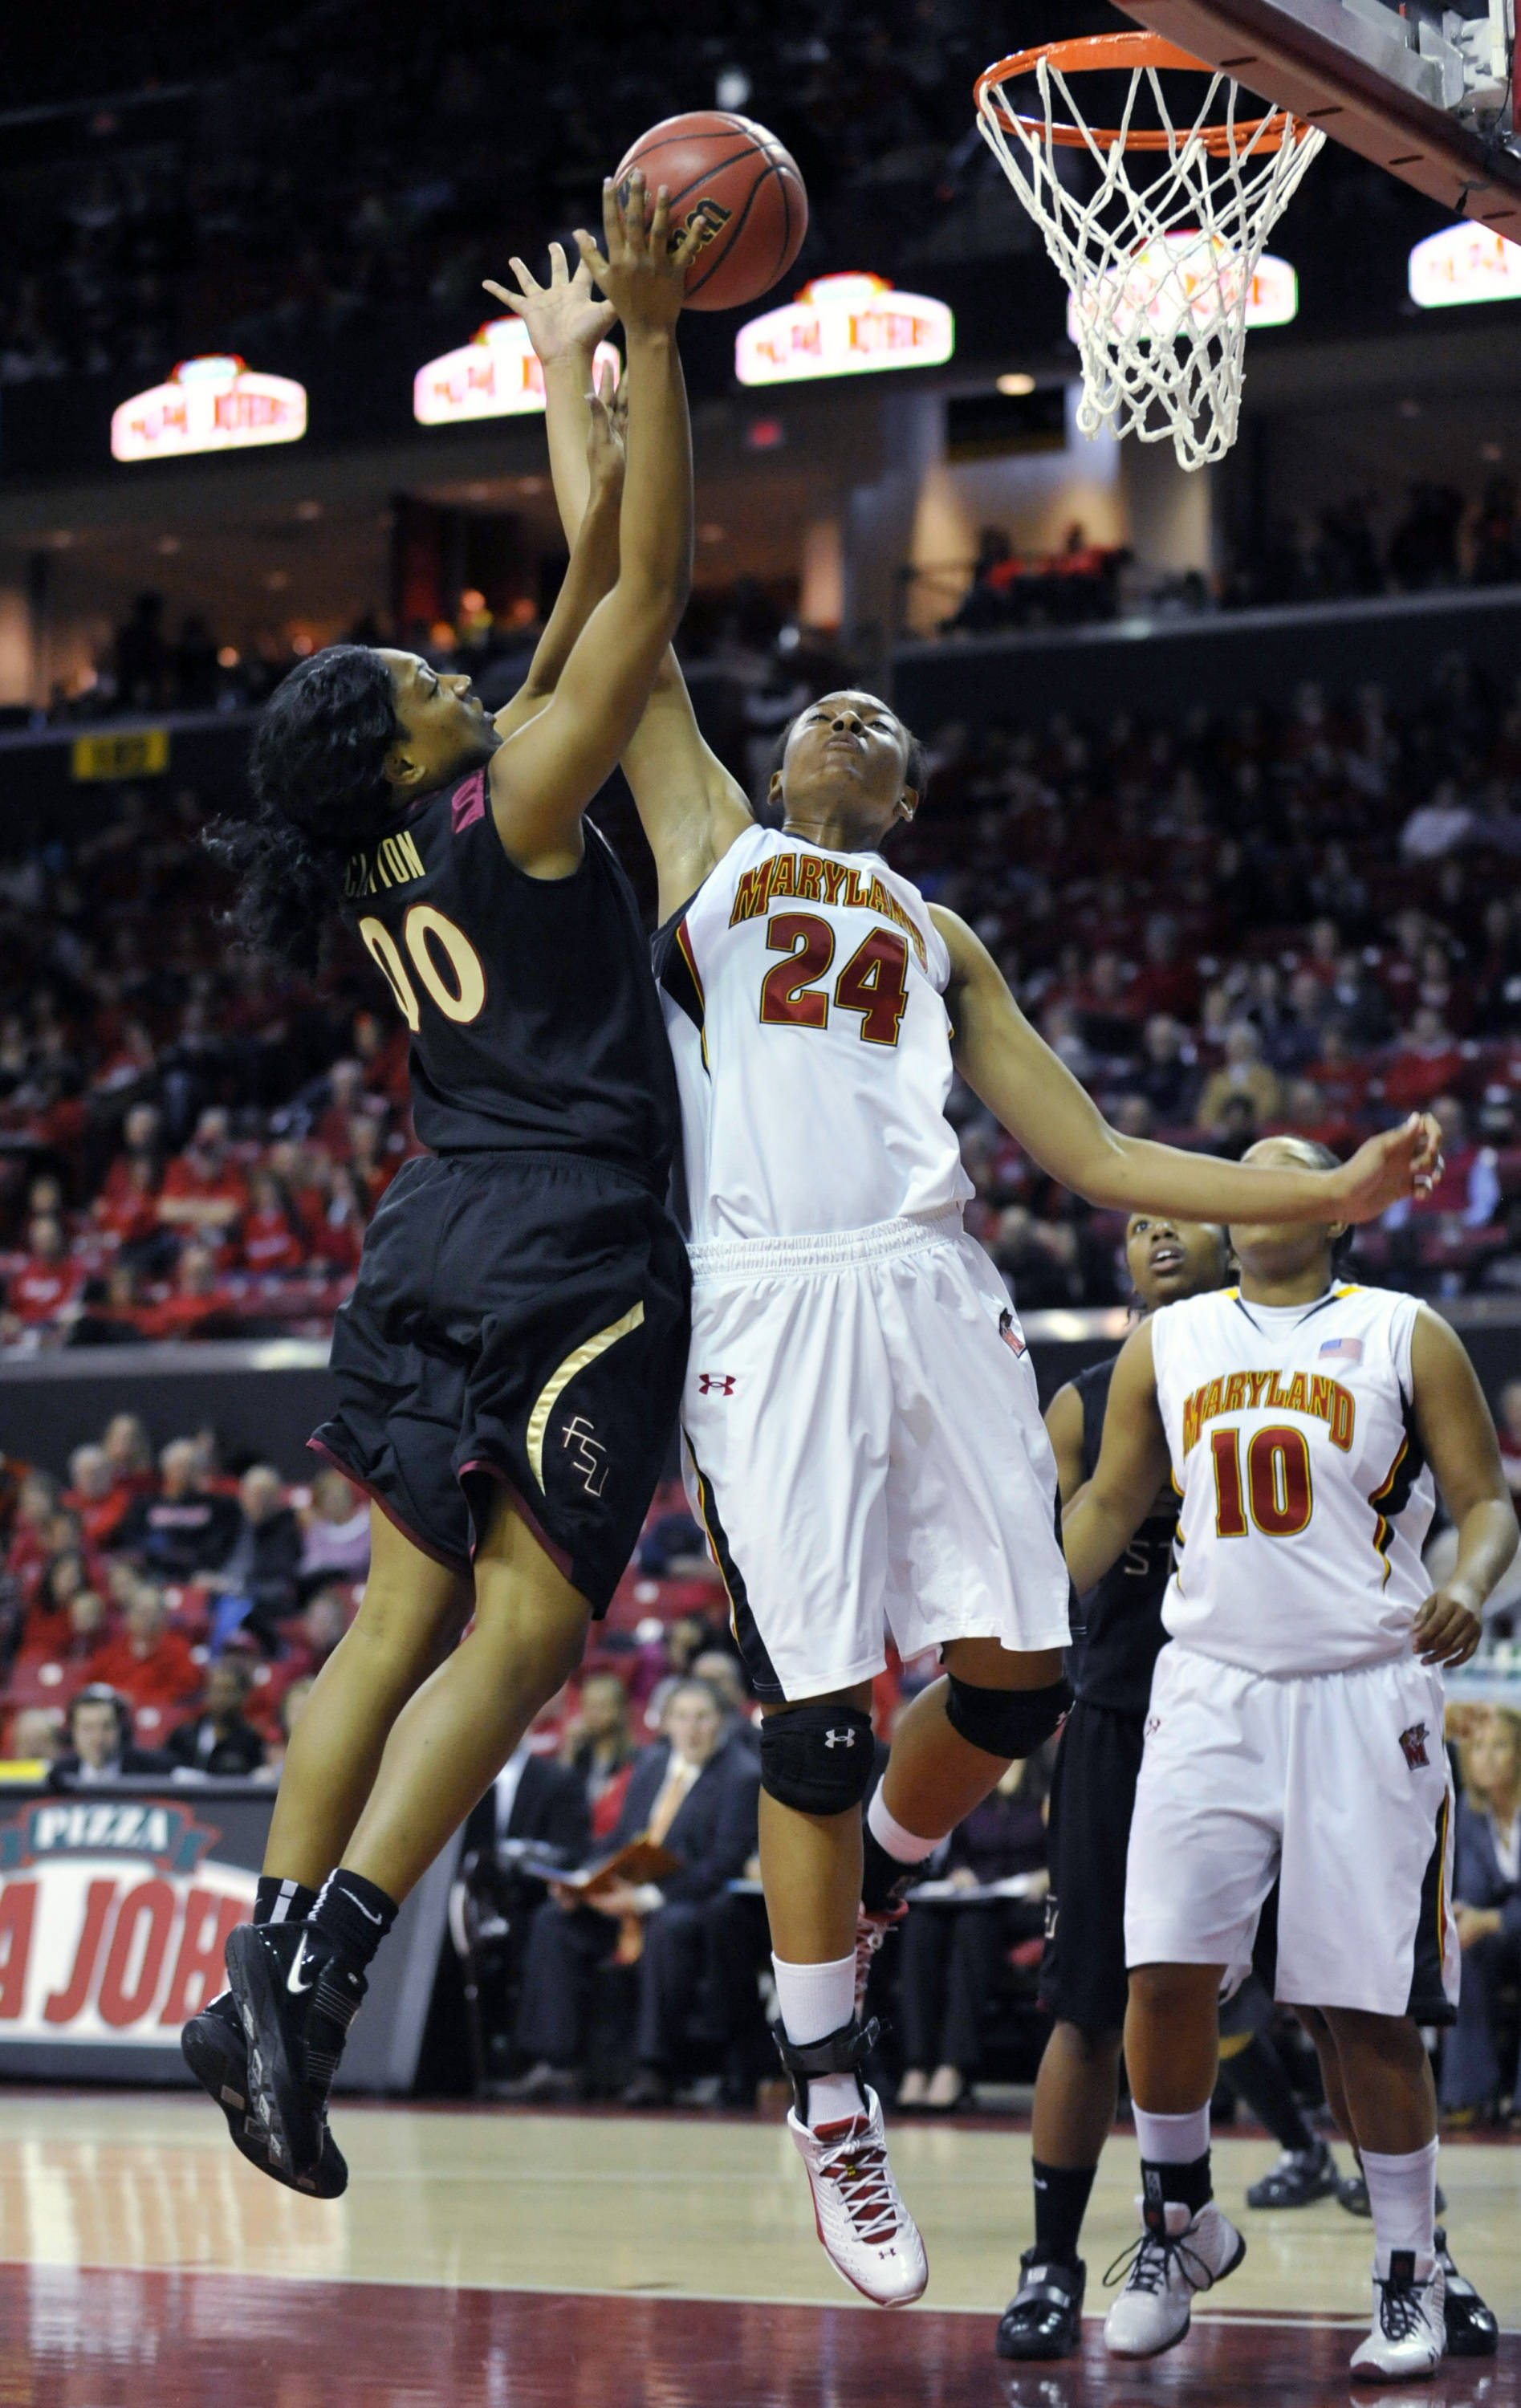 Florida State's Chasity Clayton shoots as Maryland's Diandra Tchatchouang blocks.